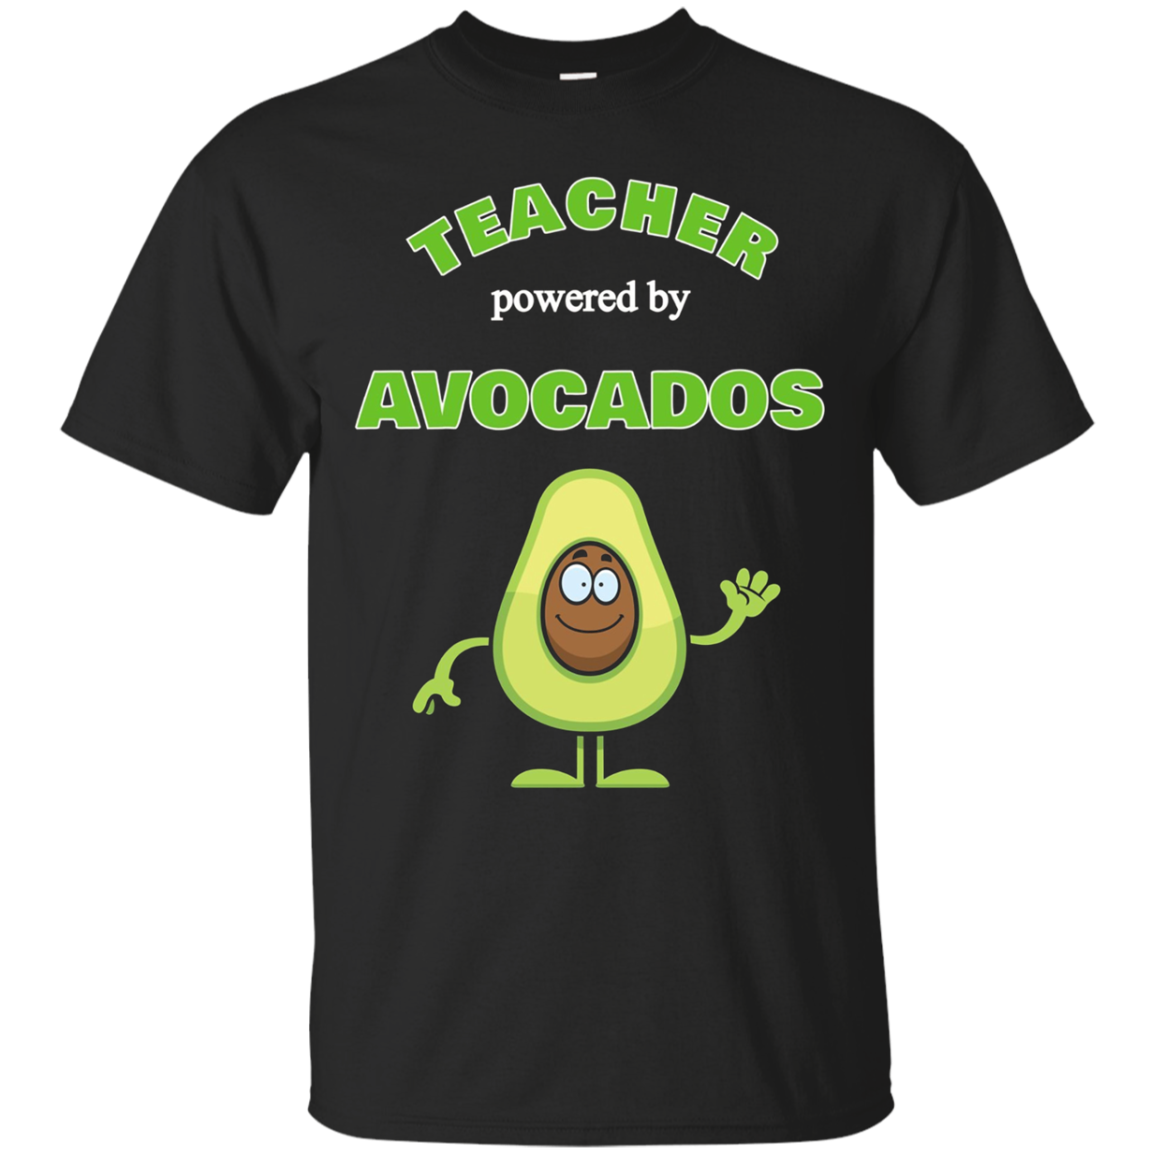 Funny Adult Tshirts Co.: Teacher Powered by Avocados T-Shirt